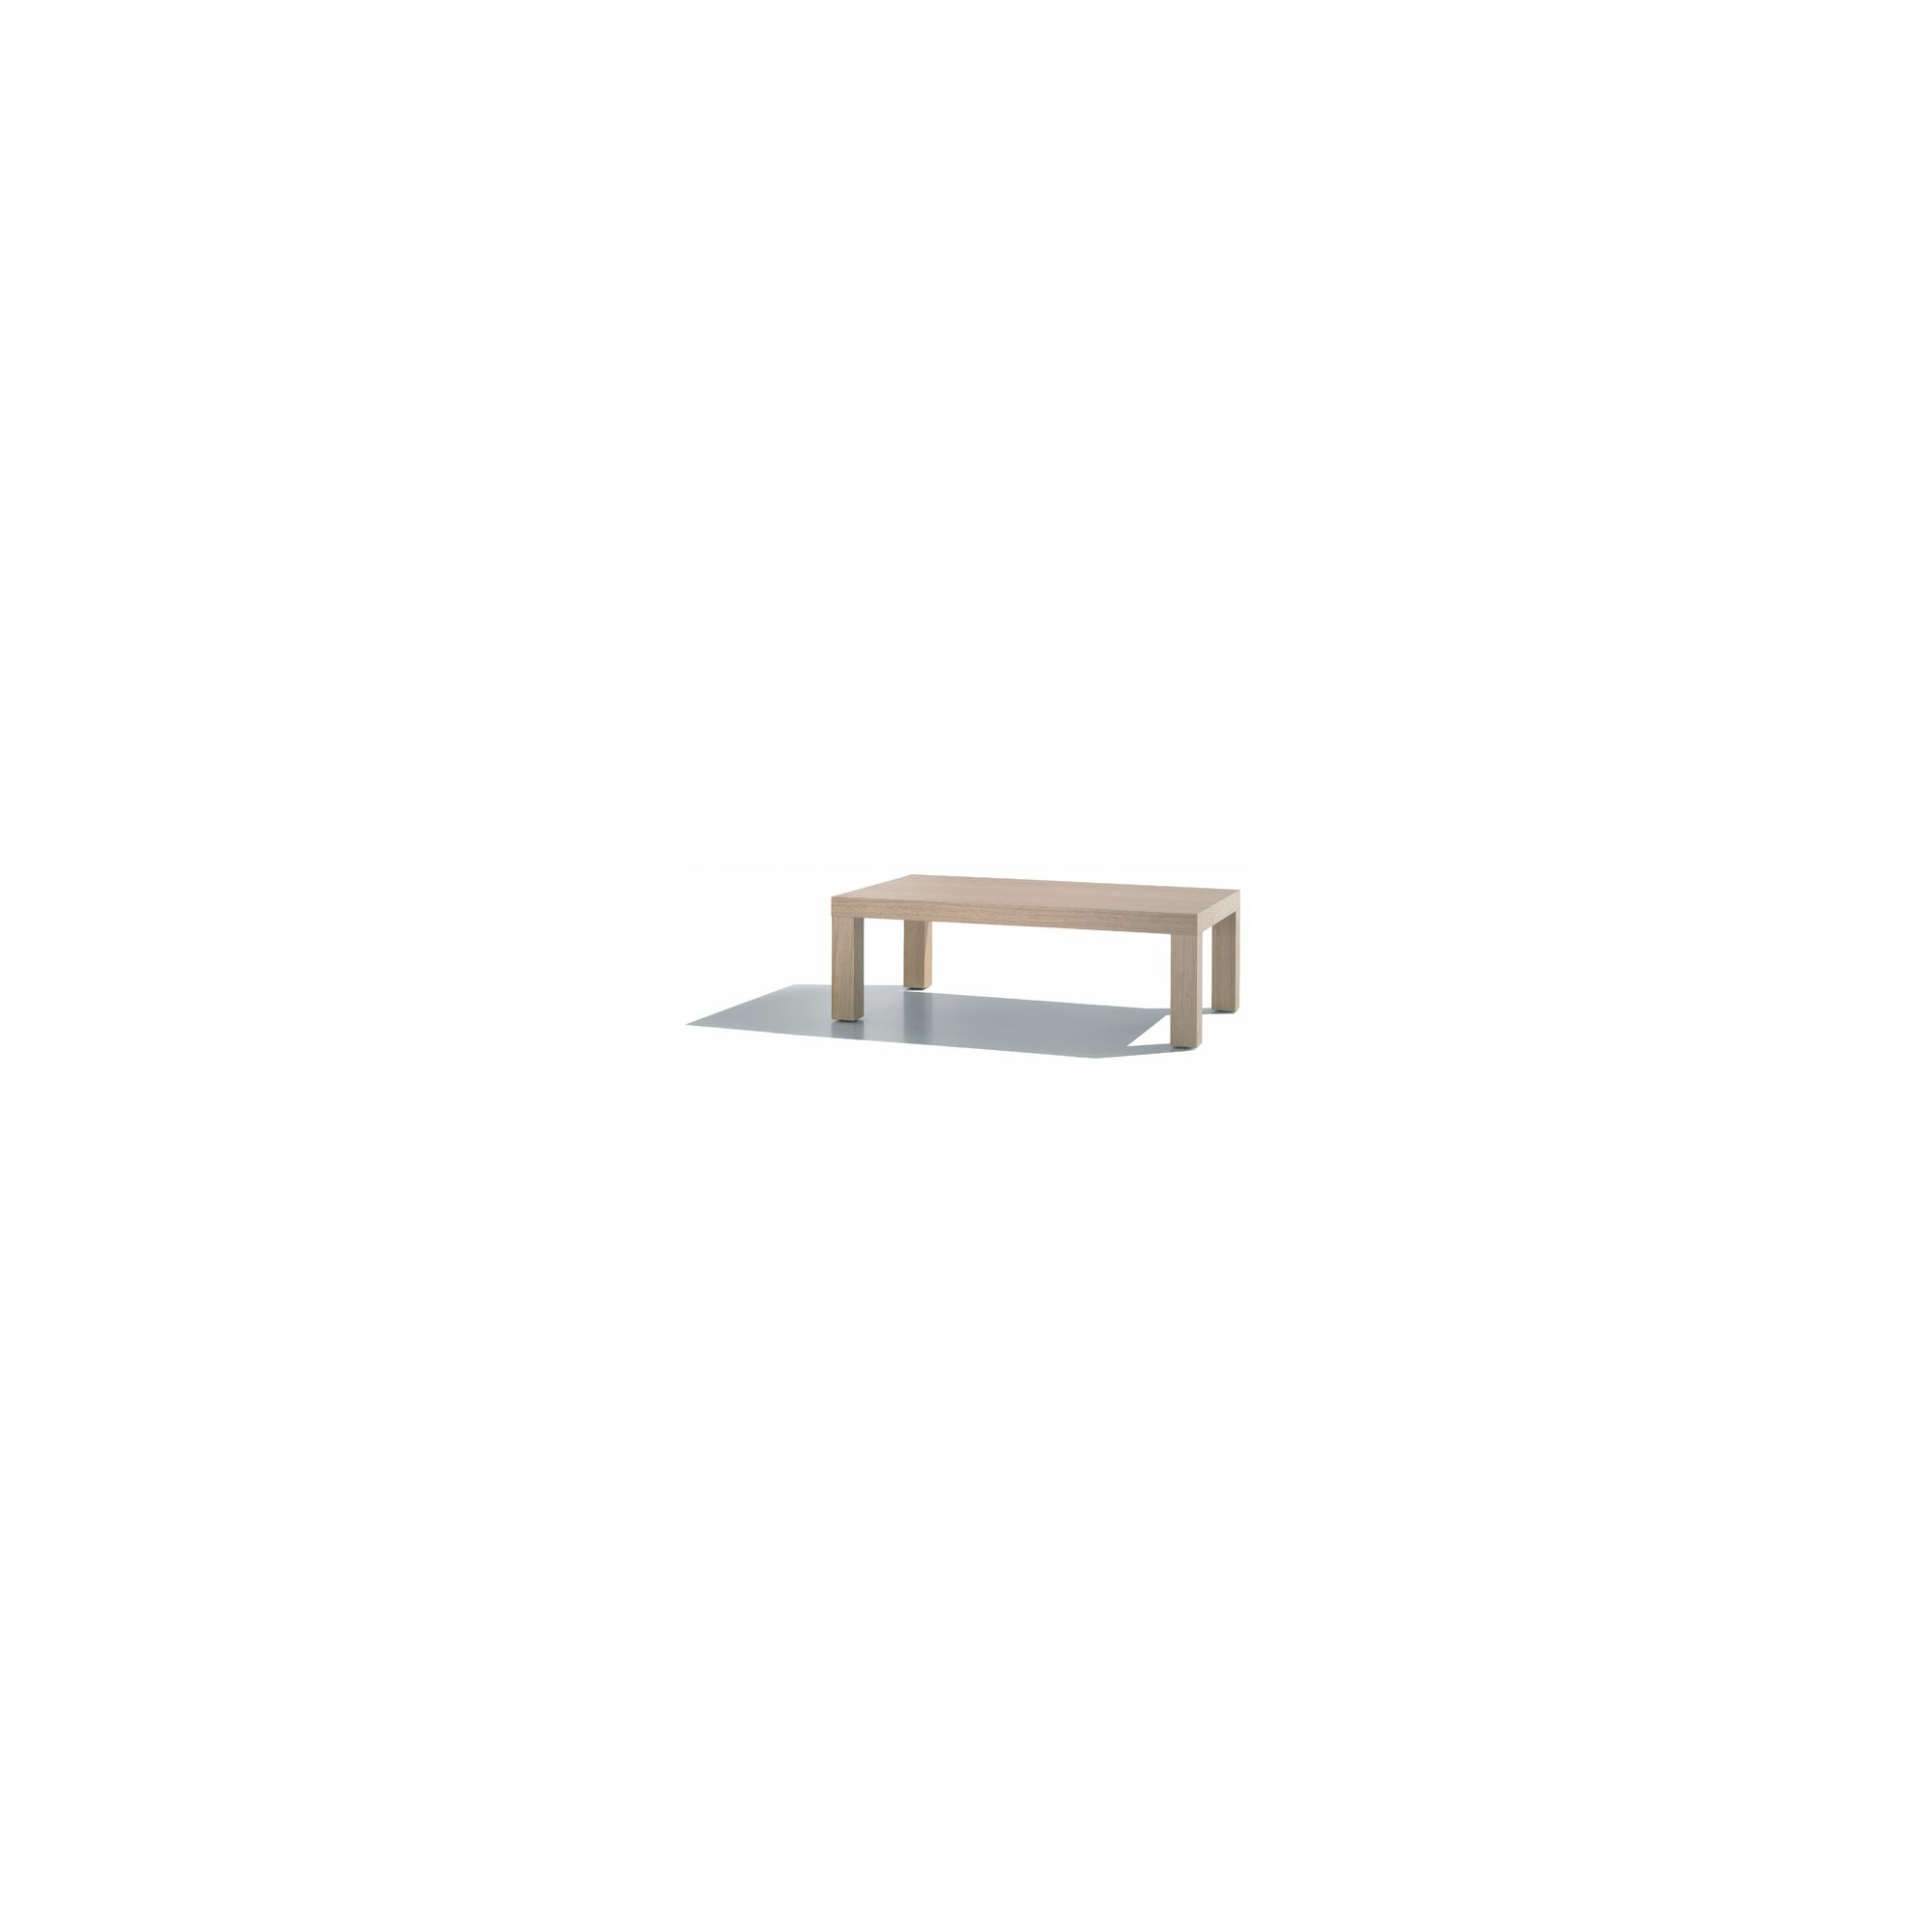 Andreu World Novel Occasional Table - 40.2cm x 120cm x 70cm